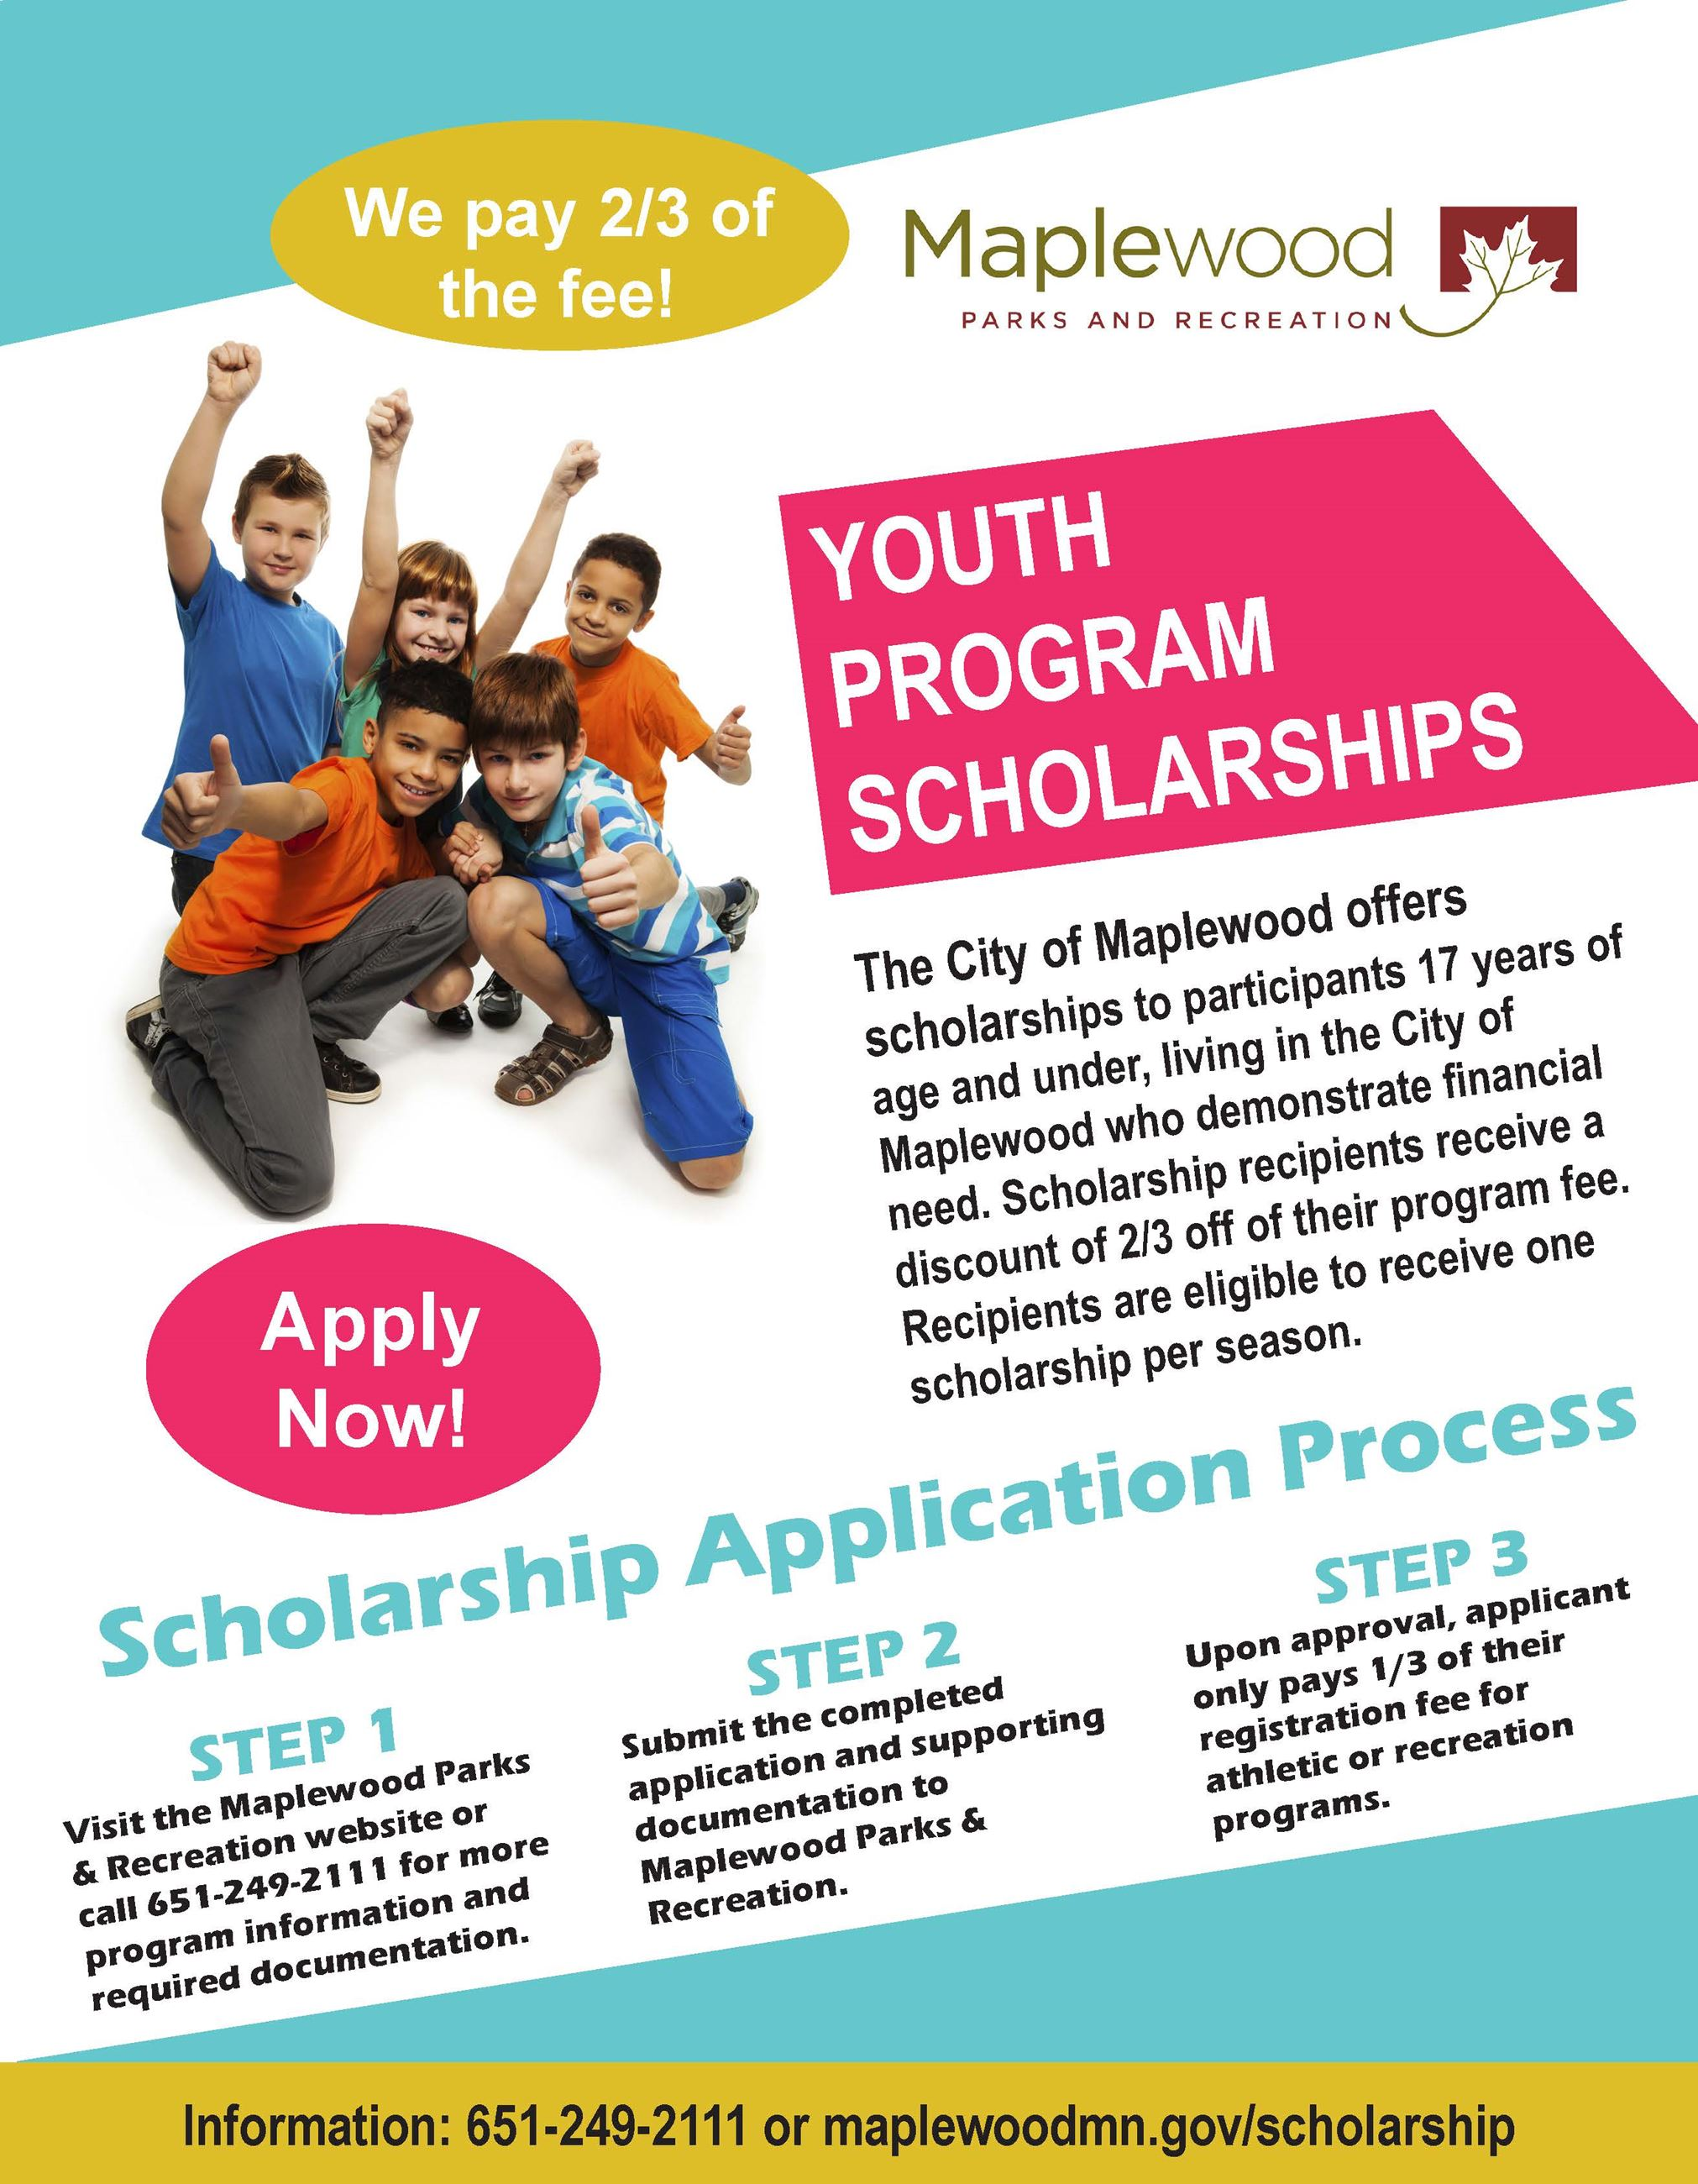 Maplewood Parks & Recreation offers scholarships to Maplewood youth who demonstrate financial need.